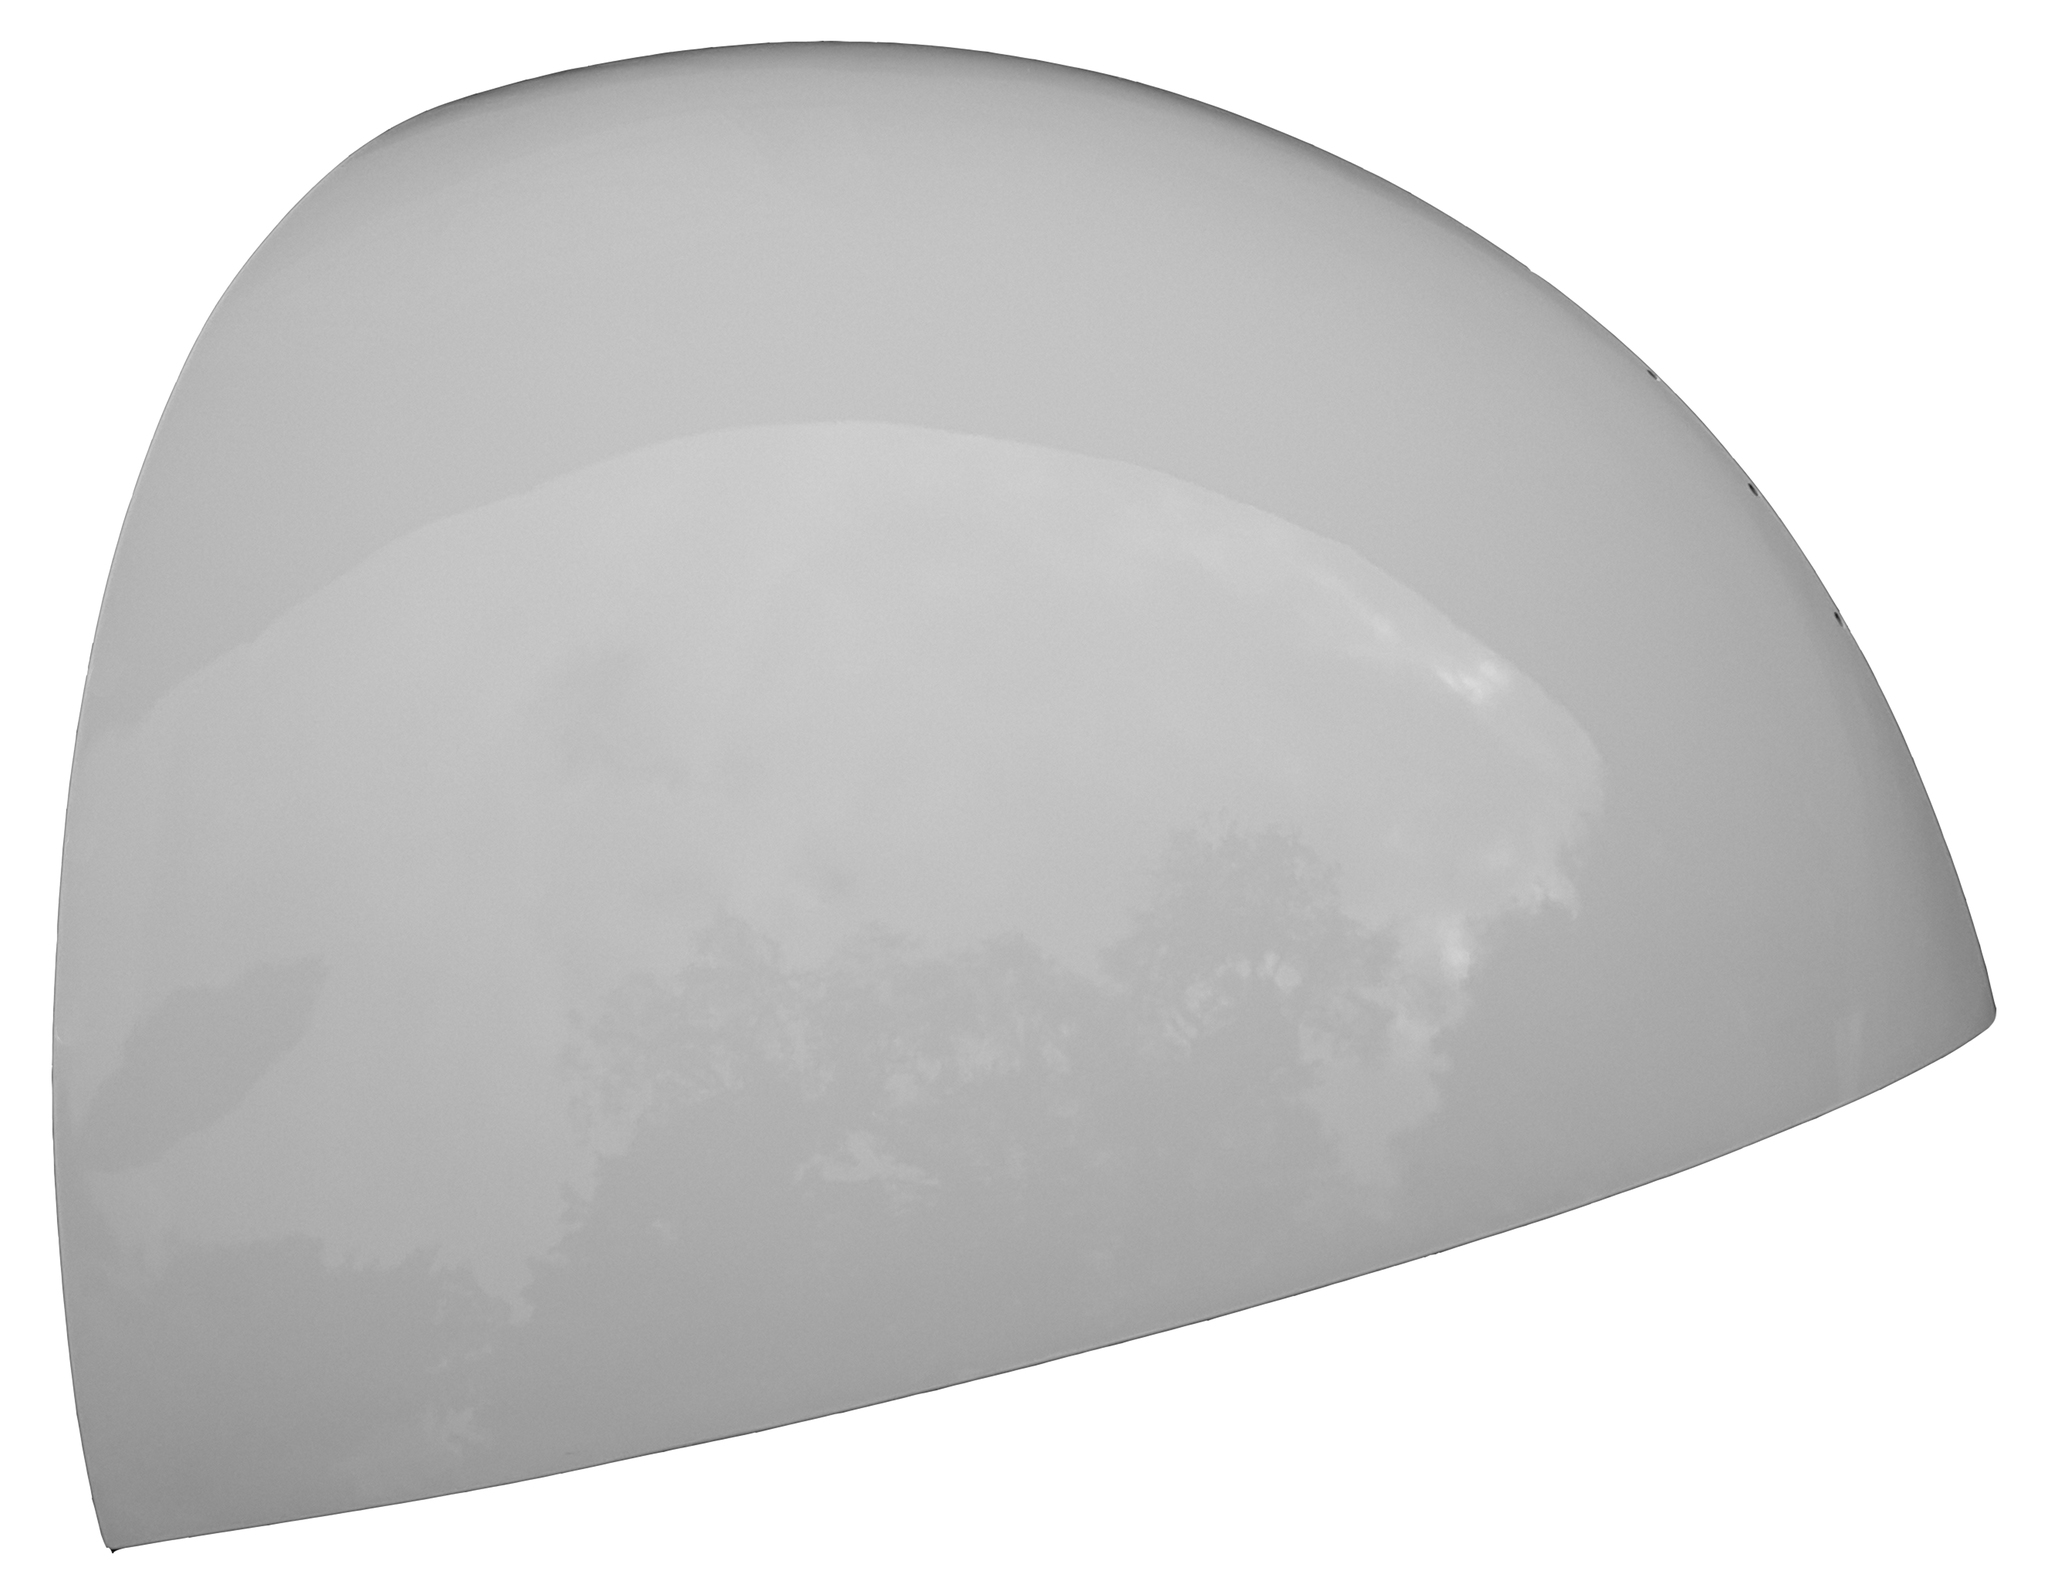 1/12 of a sphere, white, glossy